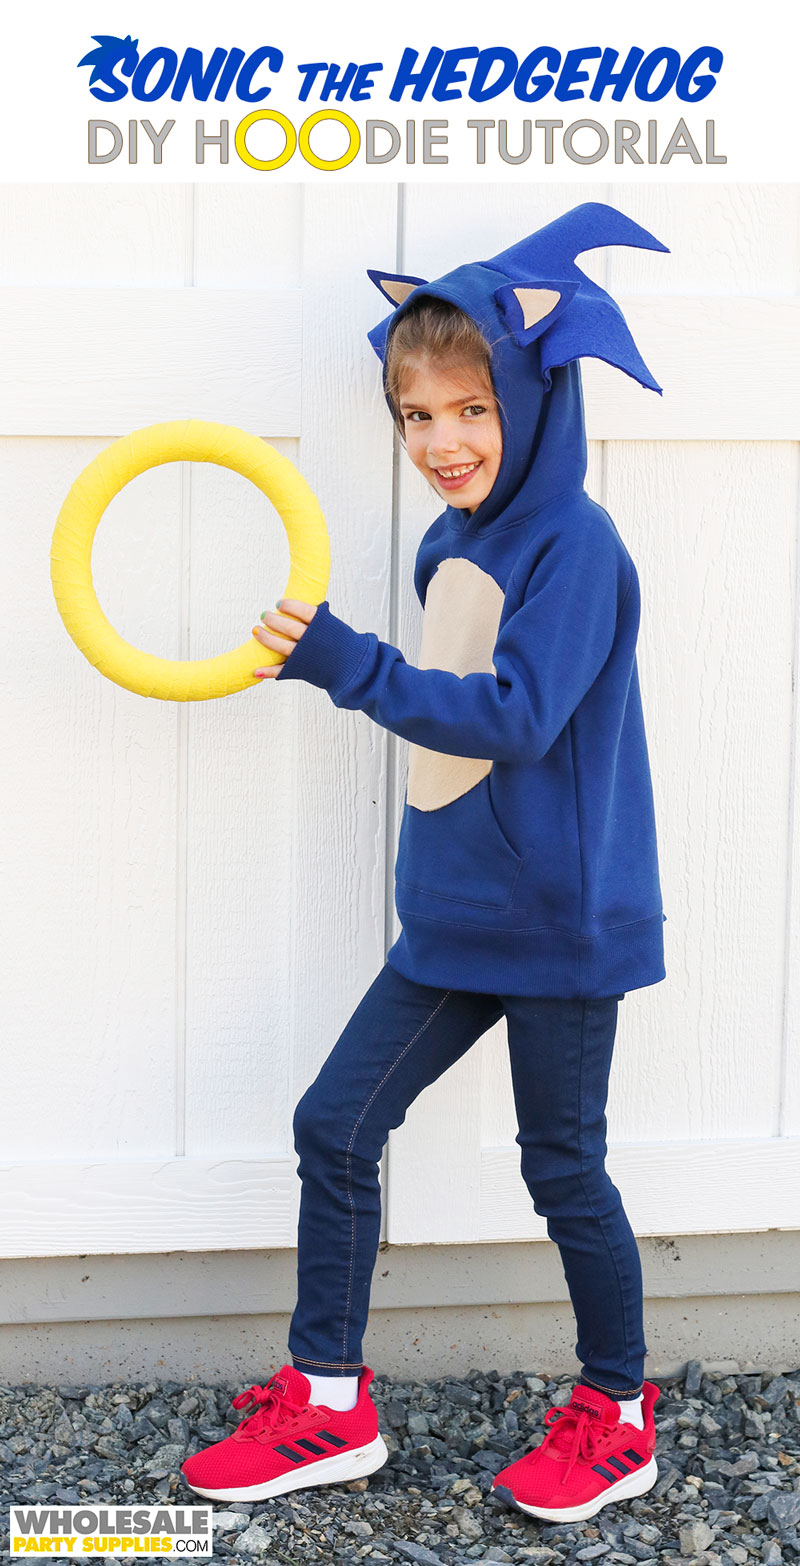 DIY Sonic The Hedgehog Hoodie Tutorial